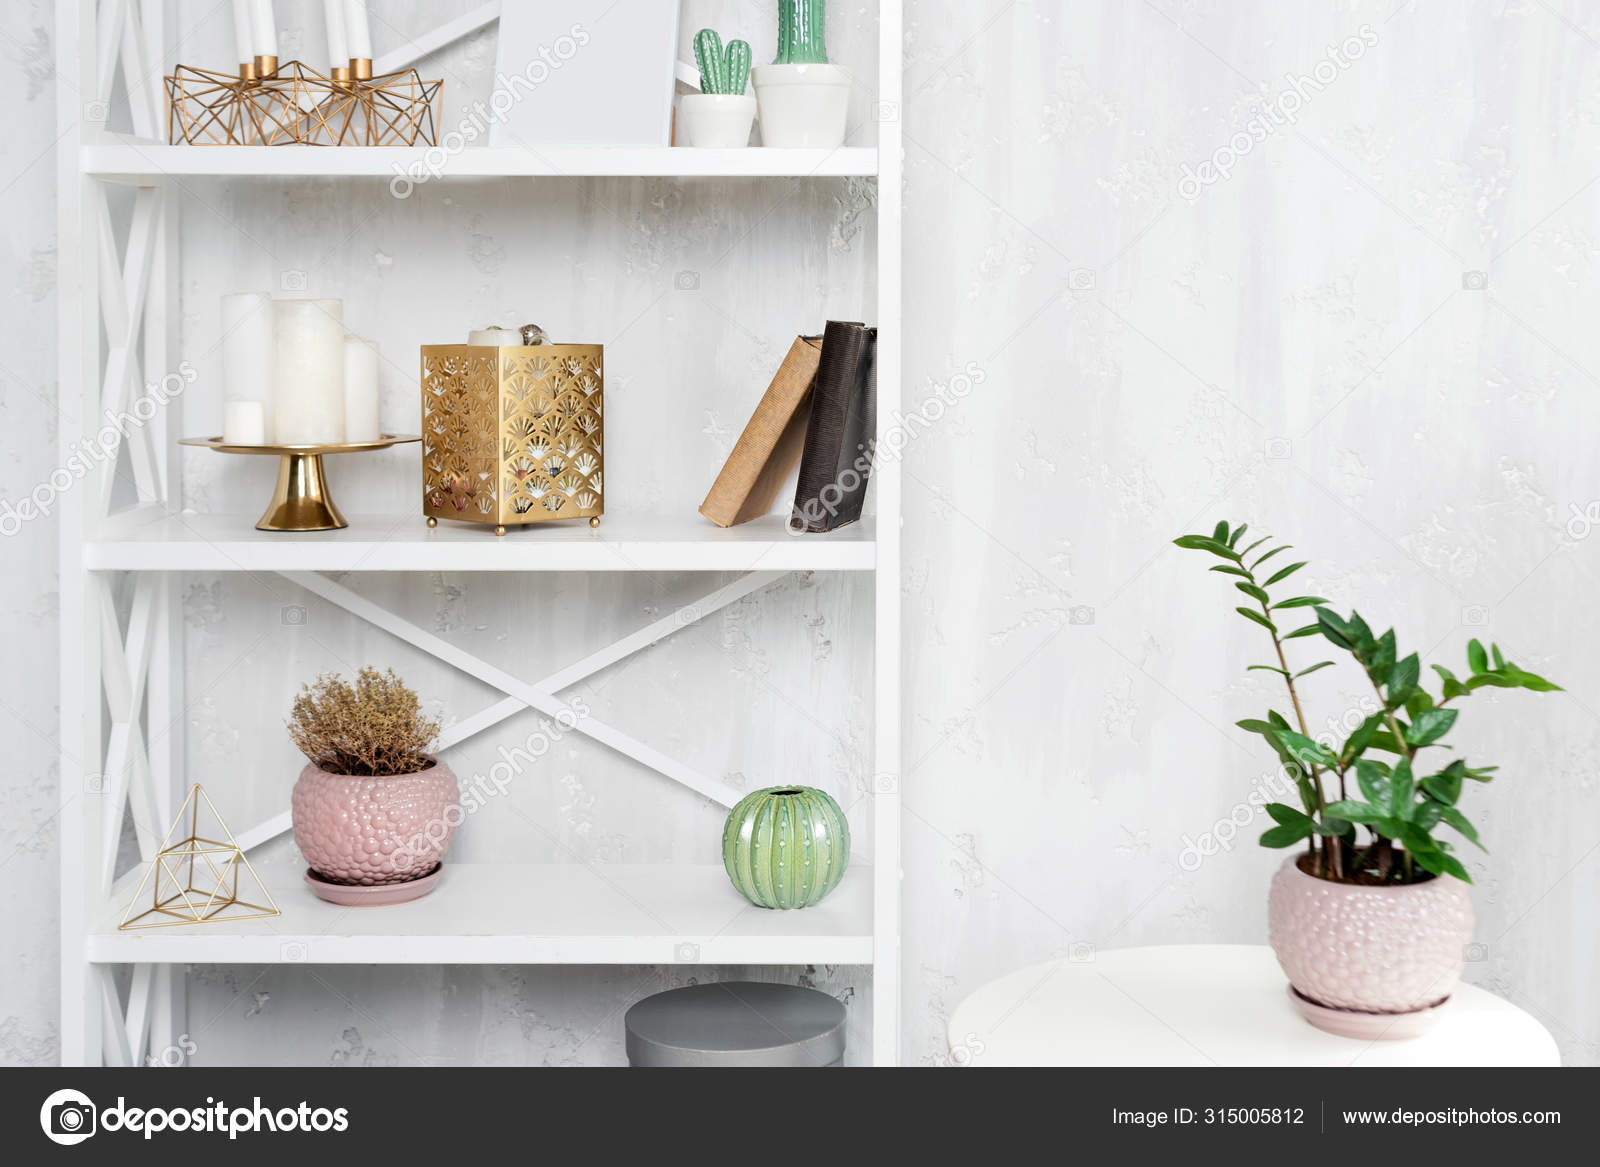 Wooden Shelving Unit With Decor Near Grey Wall Bookcase With Photo Frame Mockup And Candles Living Room Interior Details Stock Photo C Magryt Artur 315005812